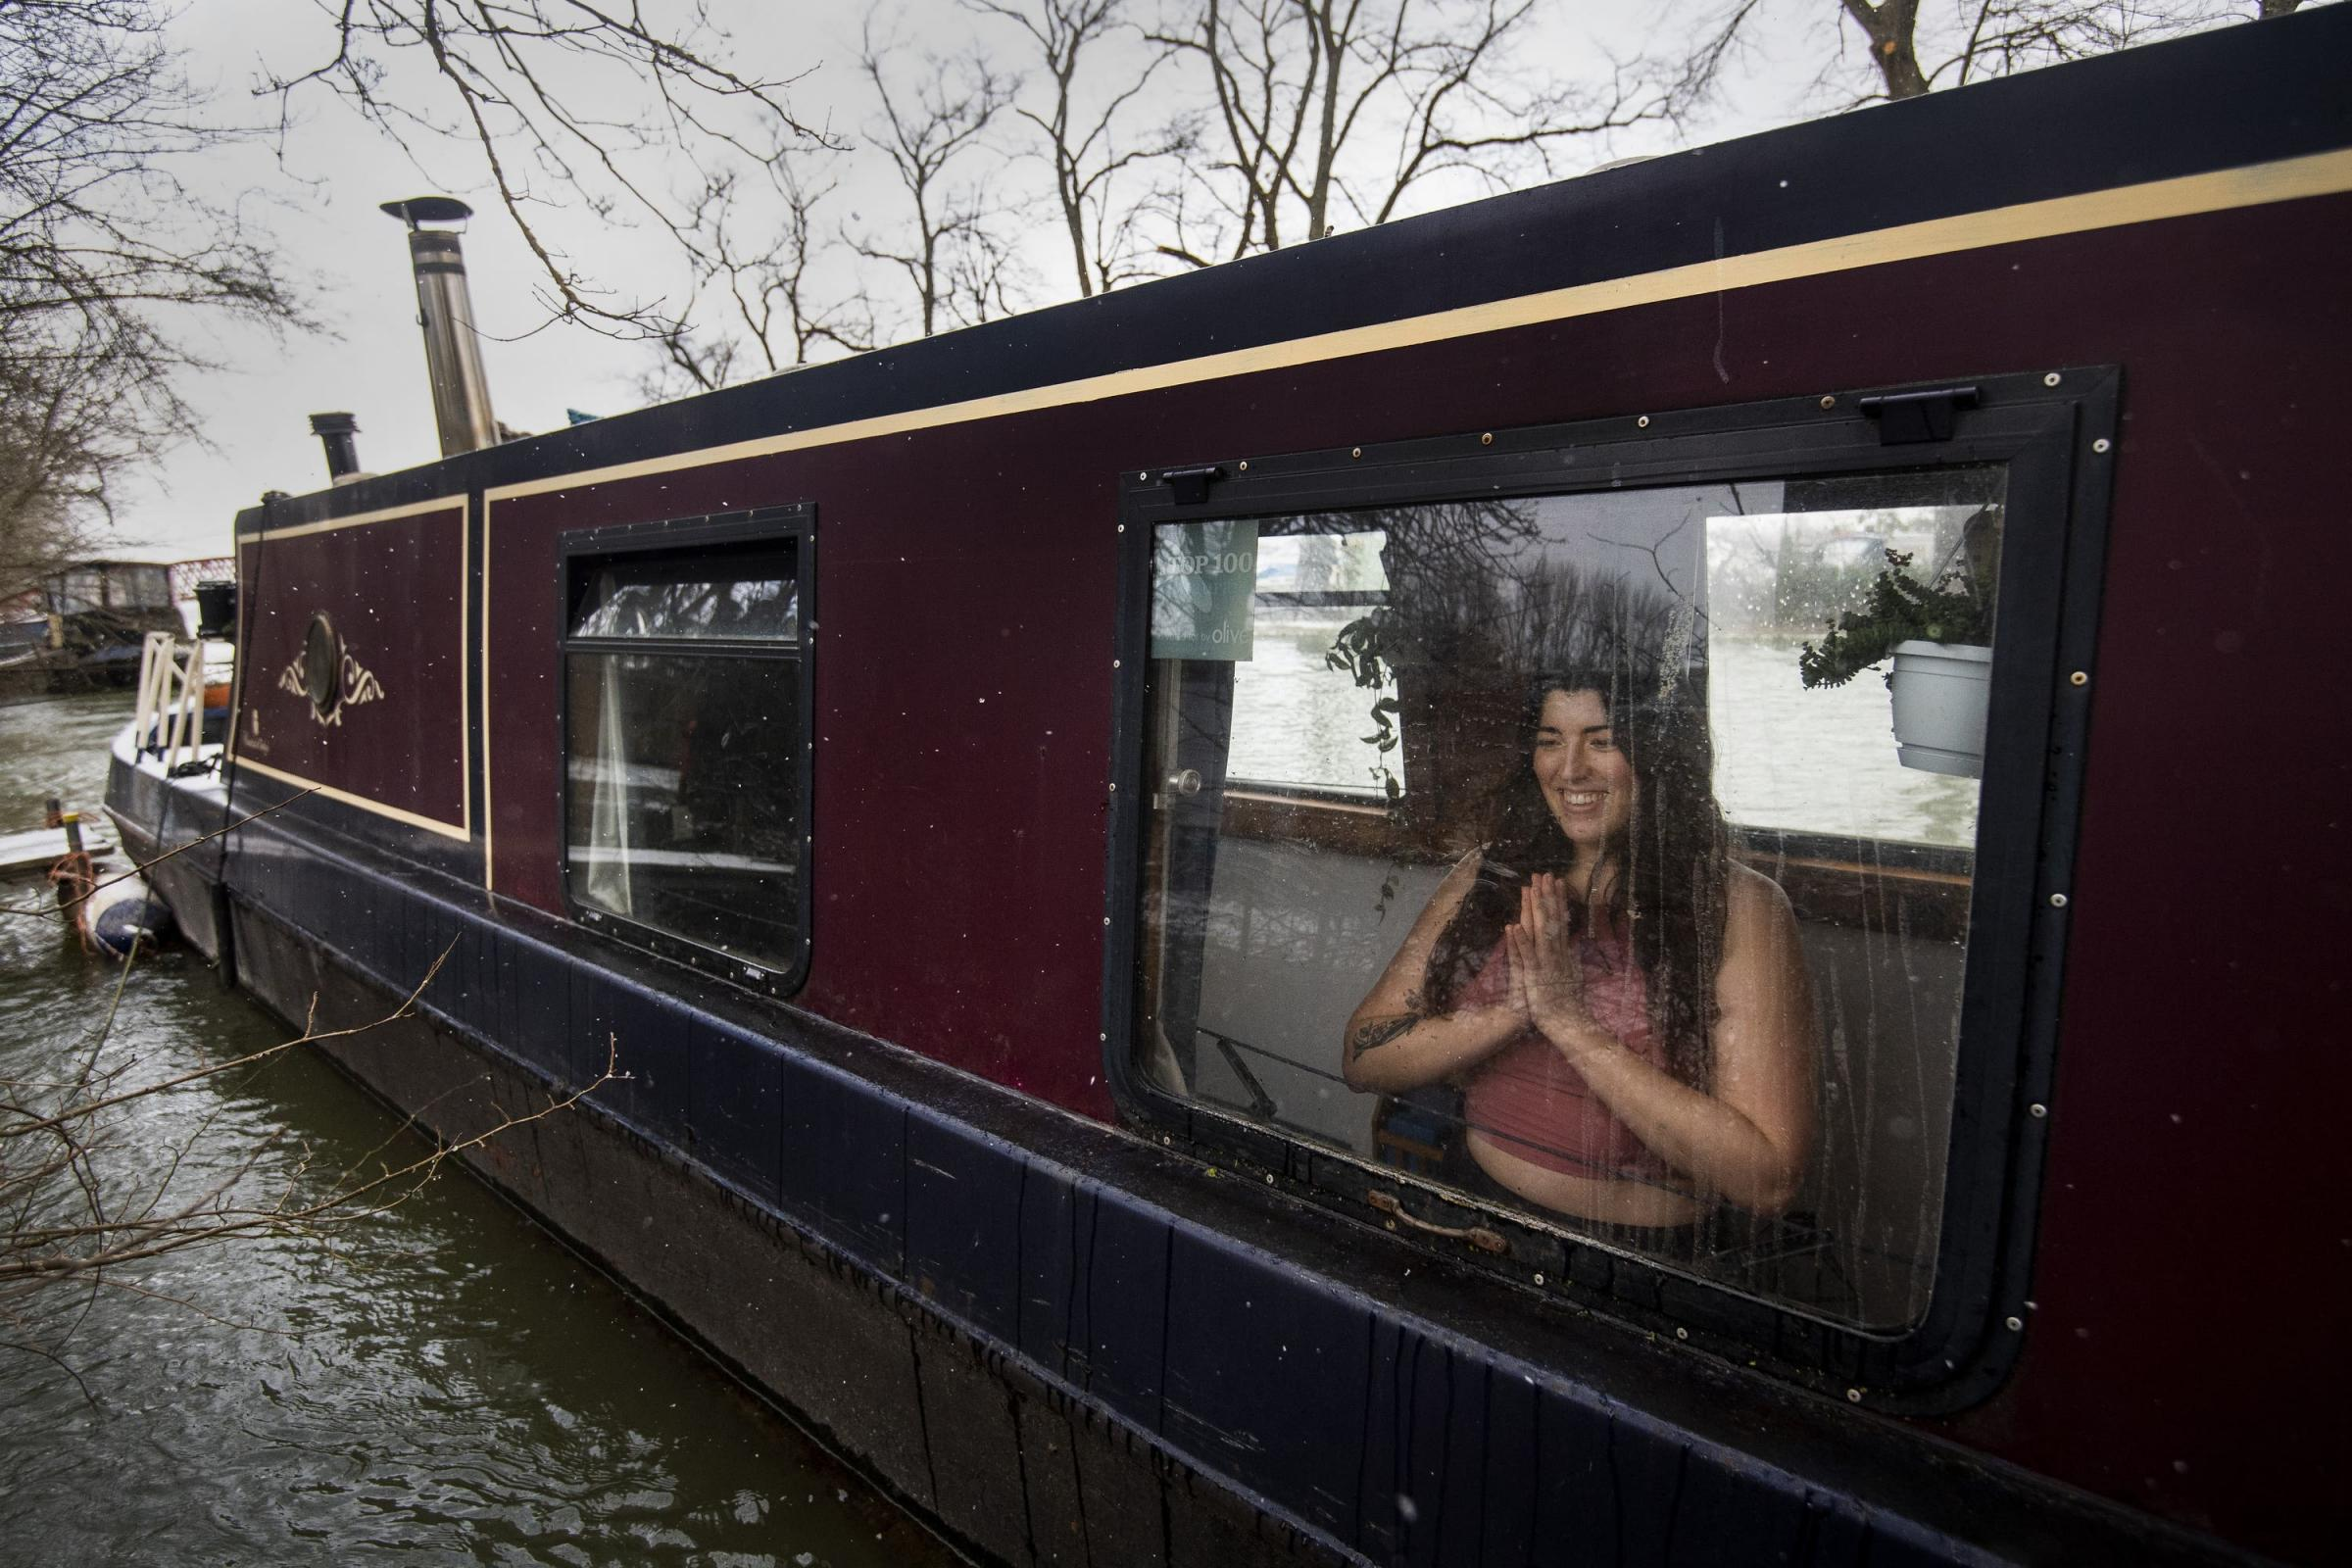 Harriet McAtee has been teaching yoga from her narrowboat. Picture: Victoria Jones/ PA